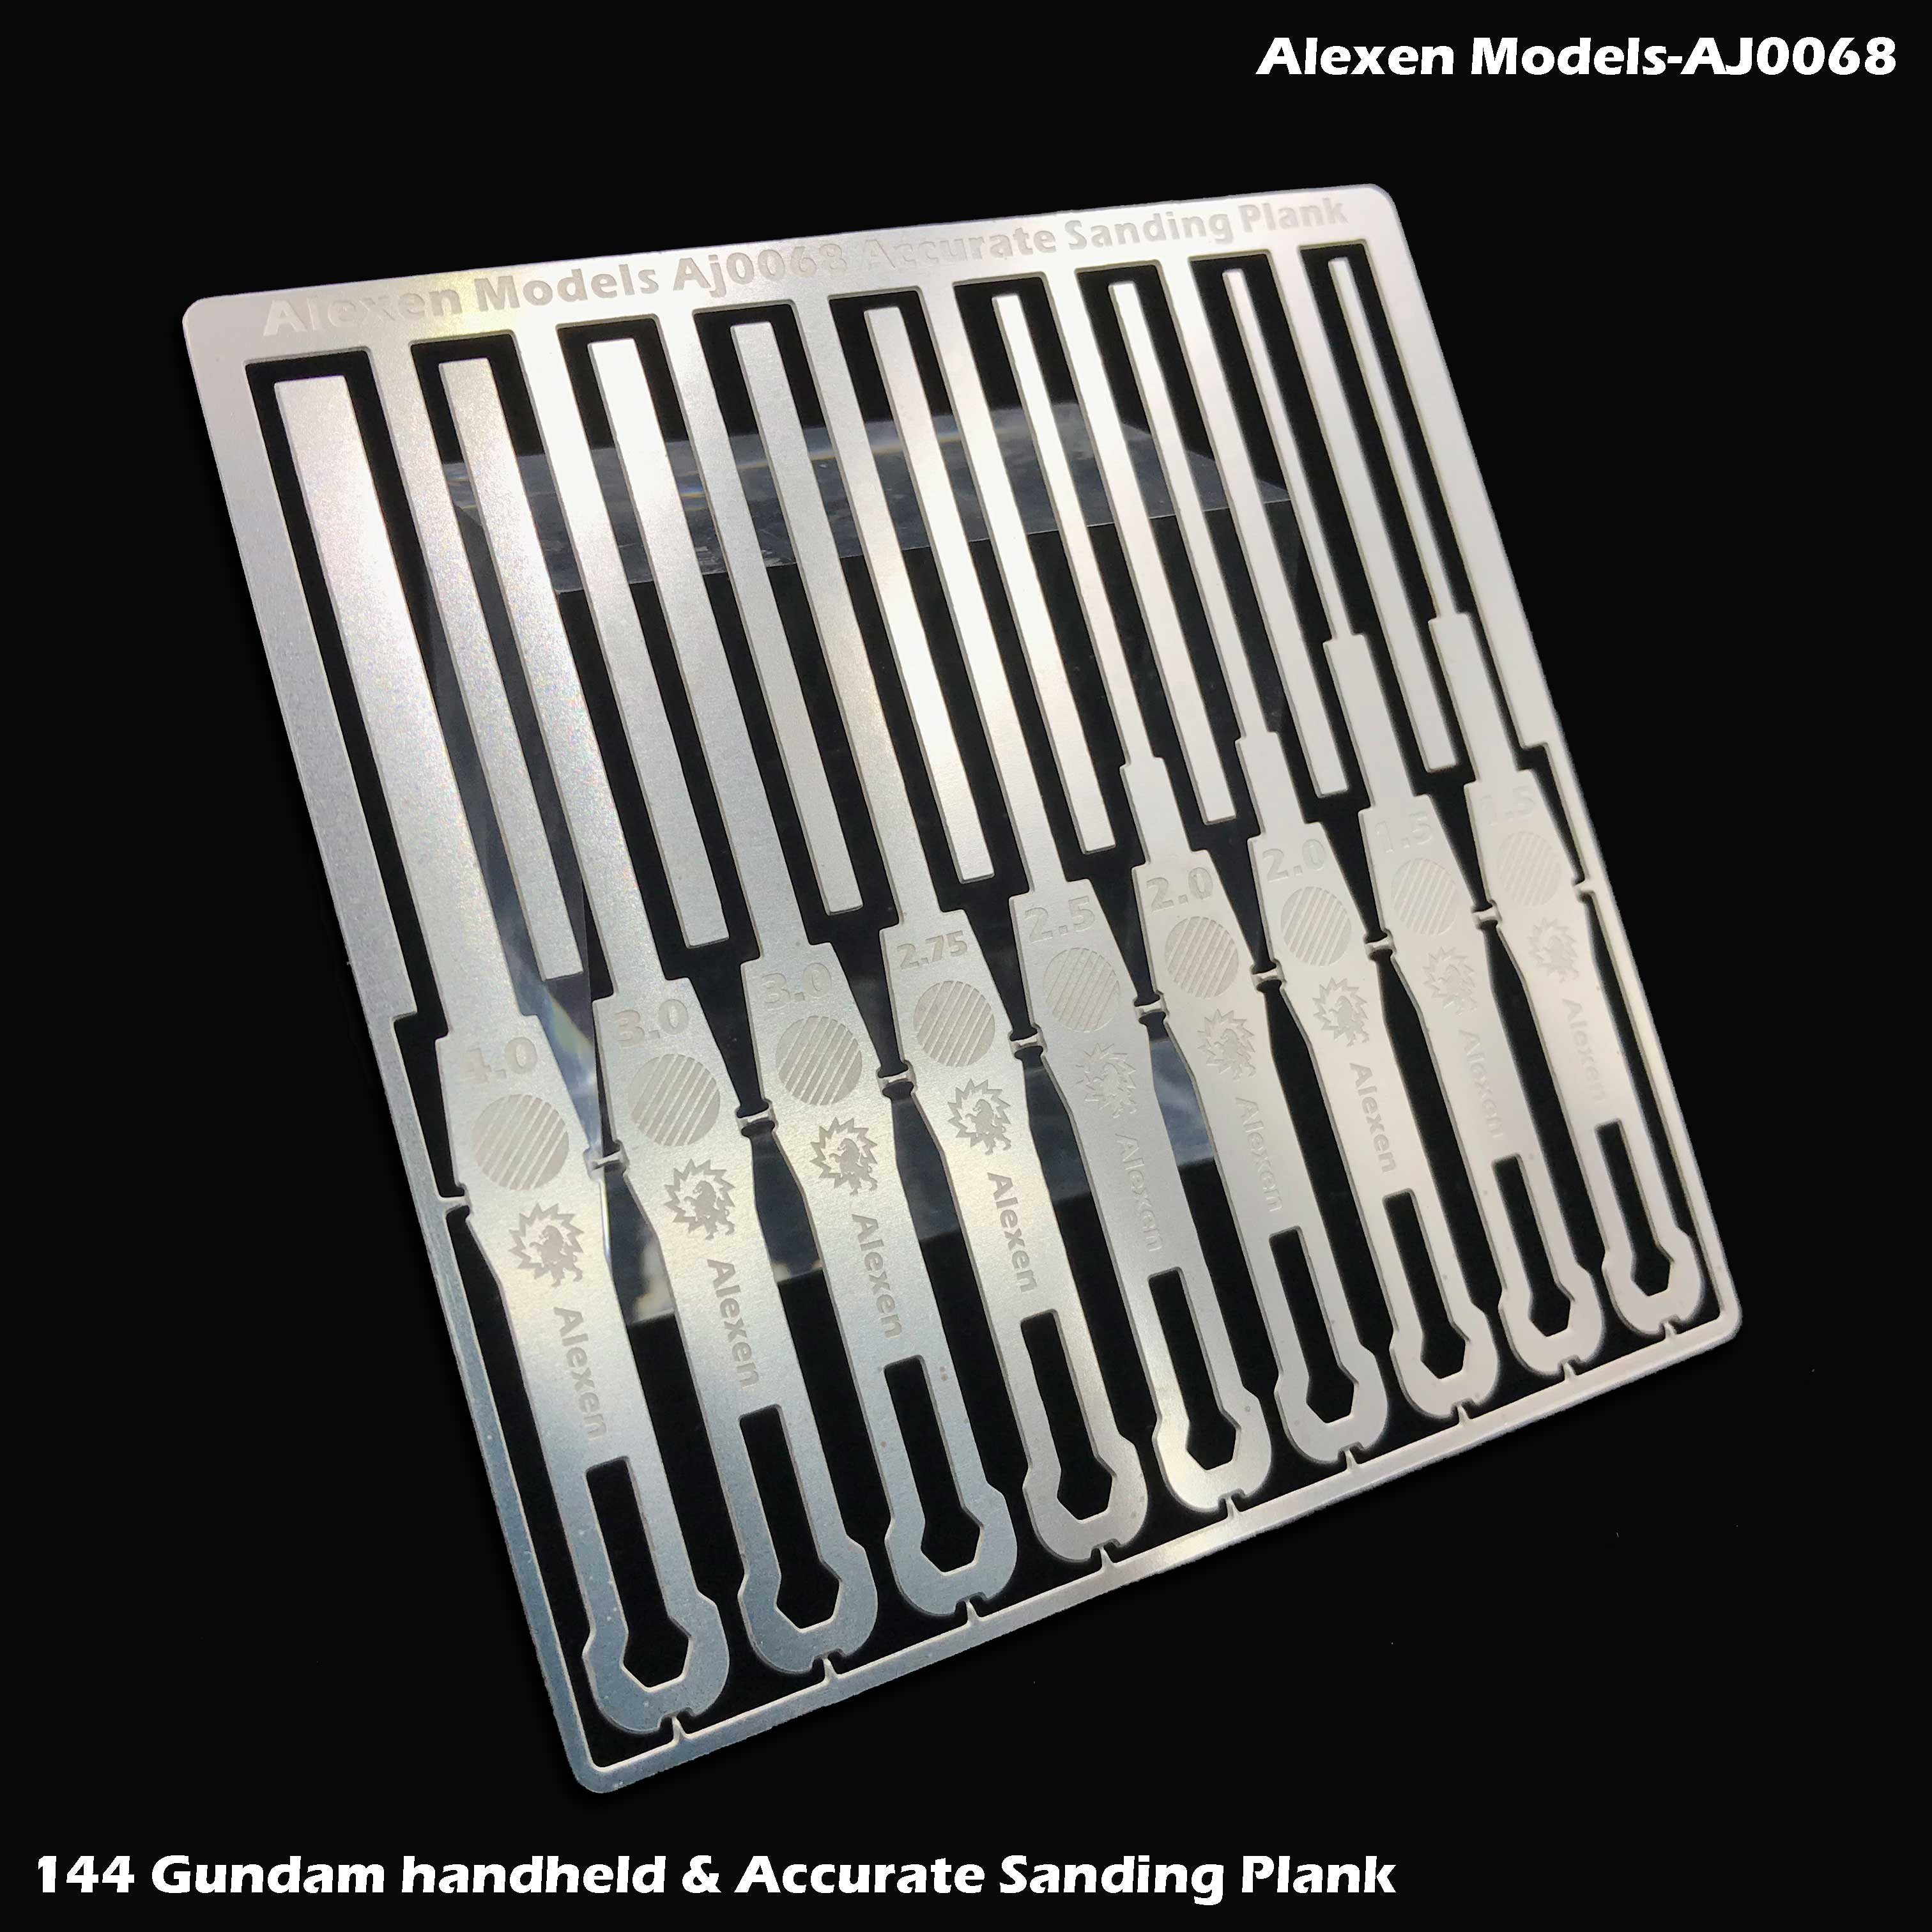 Stainless Steel Small Range Of Grinding  Model Special Grinding Plate Grinding Rod Tools Unisex 10 In 1  Hobby Grinding Tools